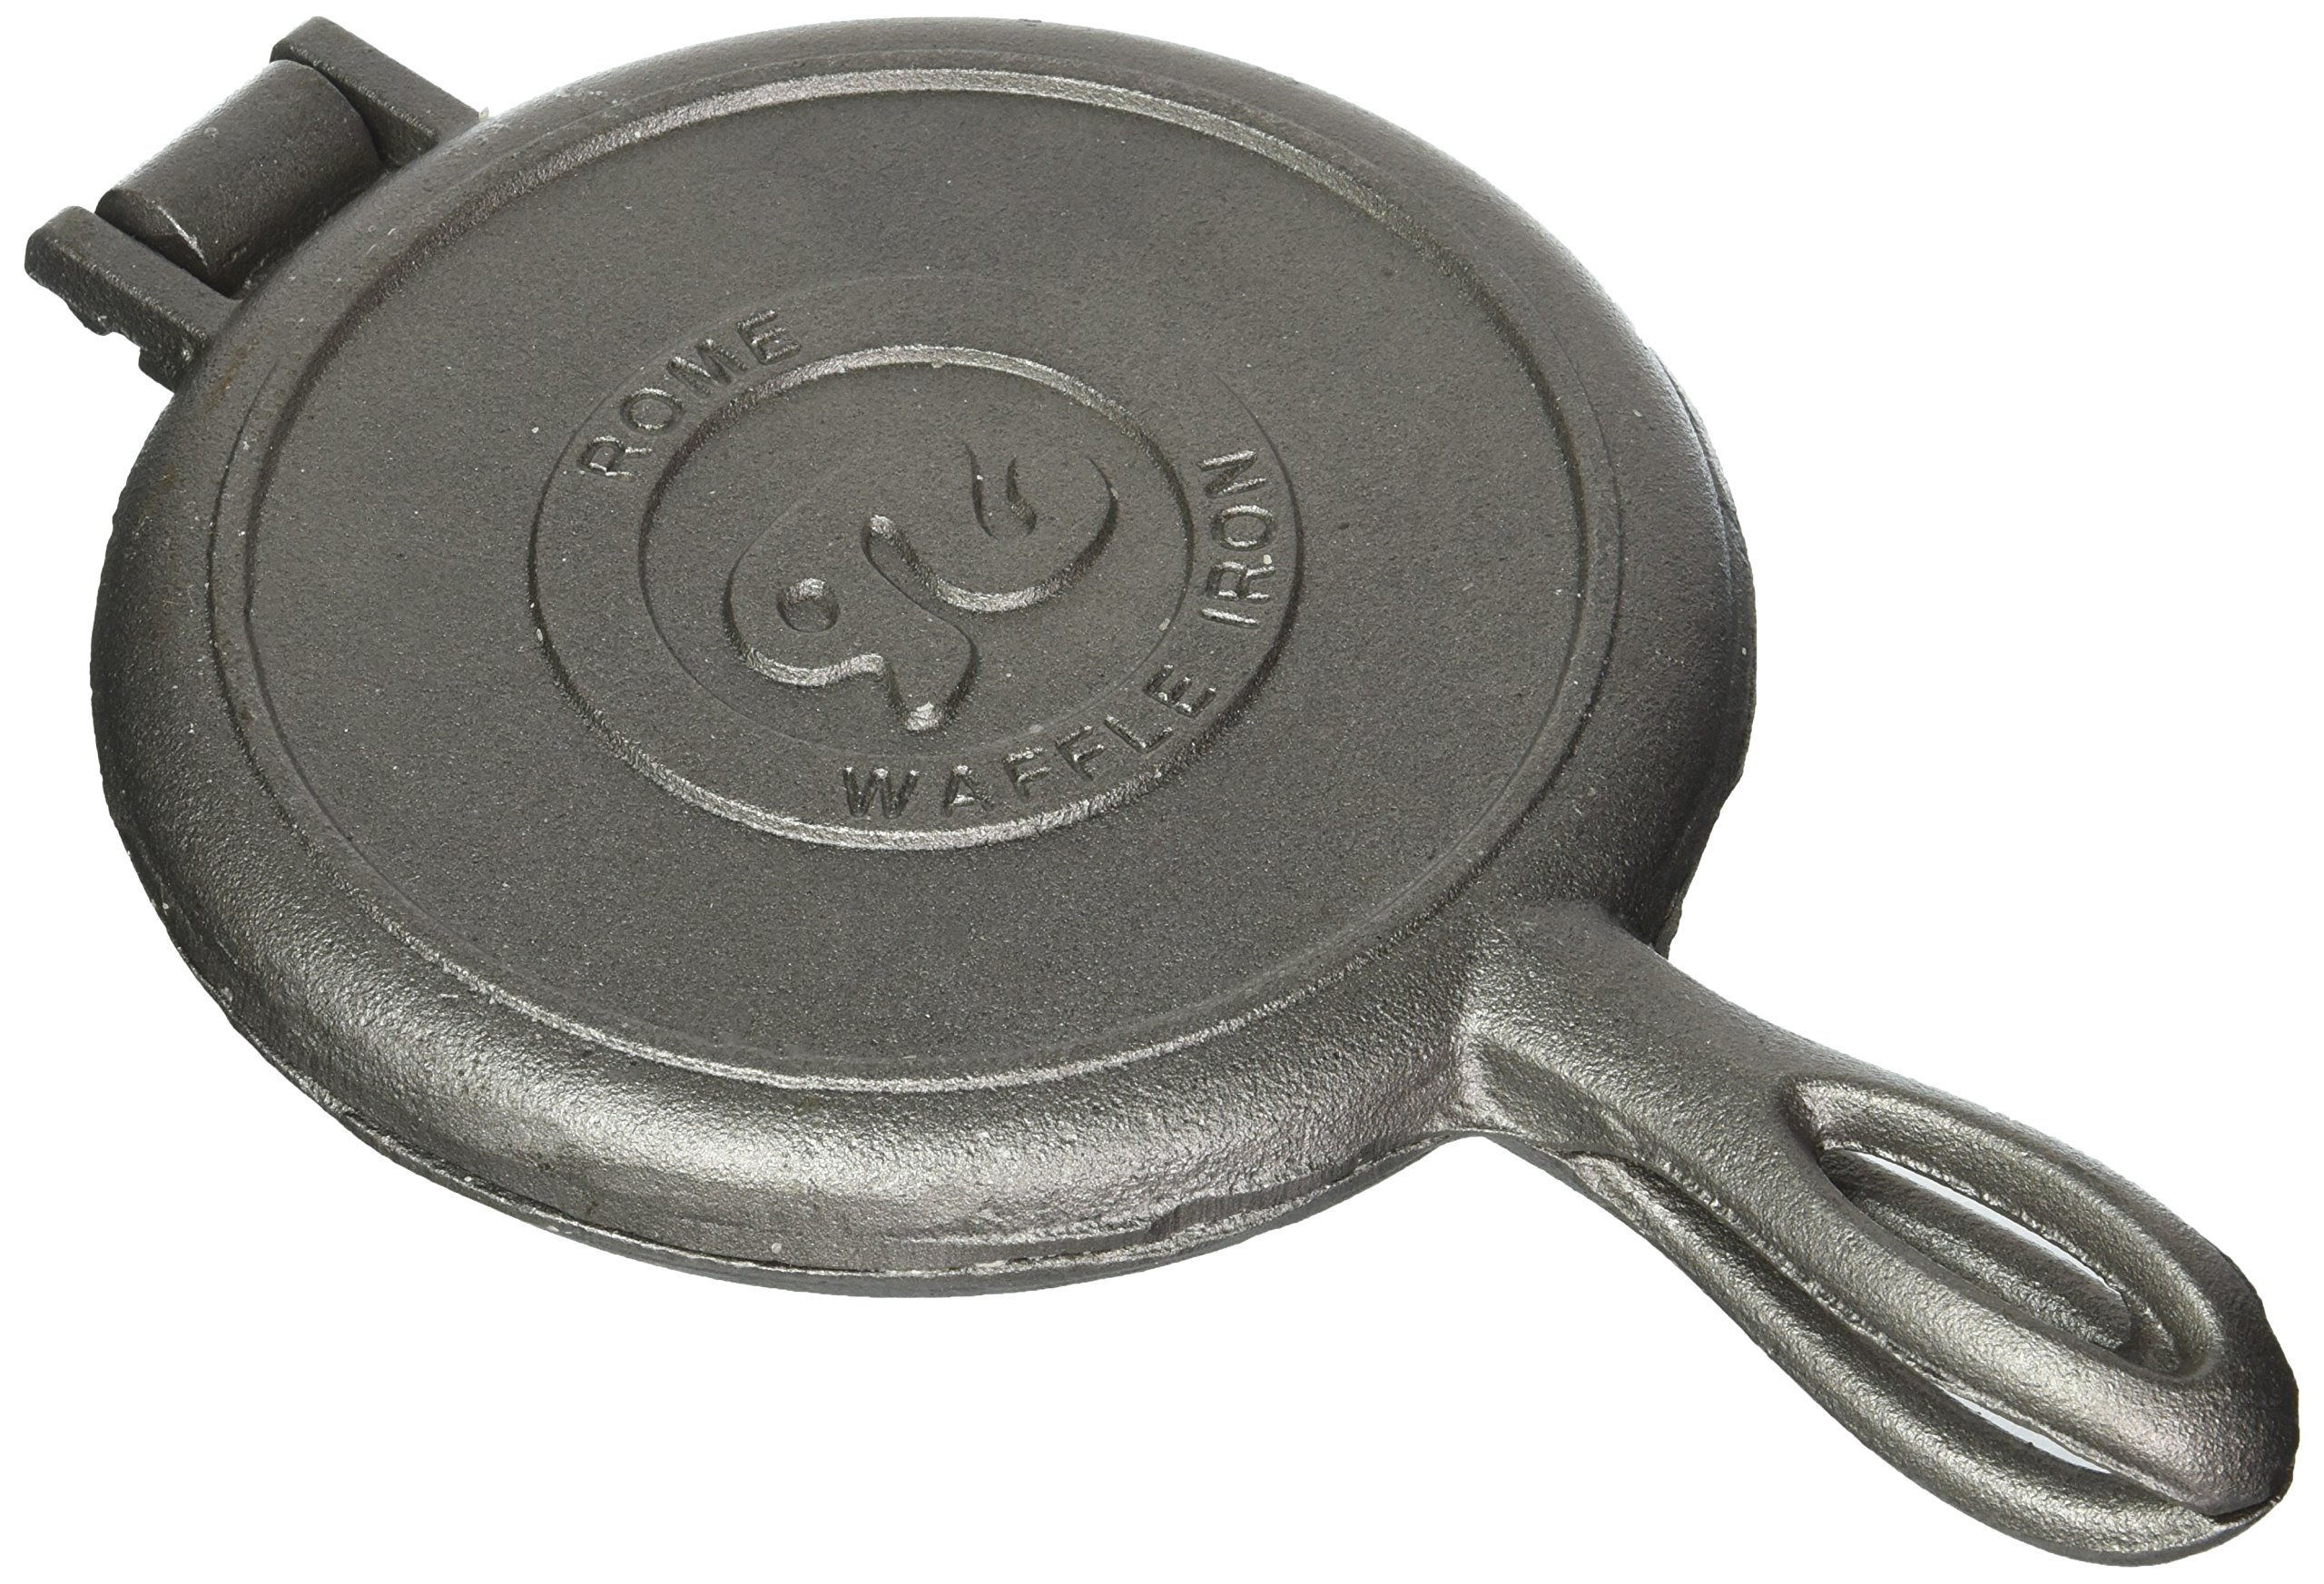 Solid Cast Iron Old Fashioned Waffle Iron by Rome's Original by Rome's Original (Image #3)